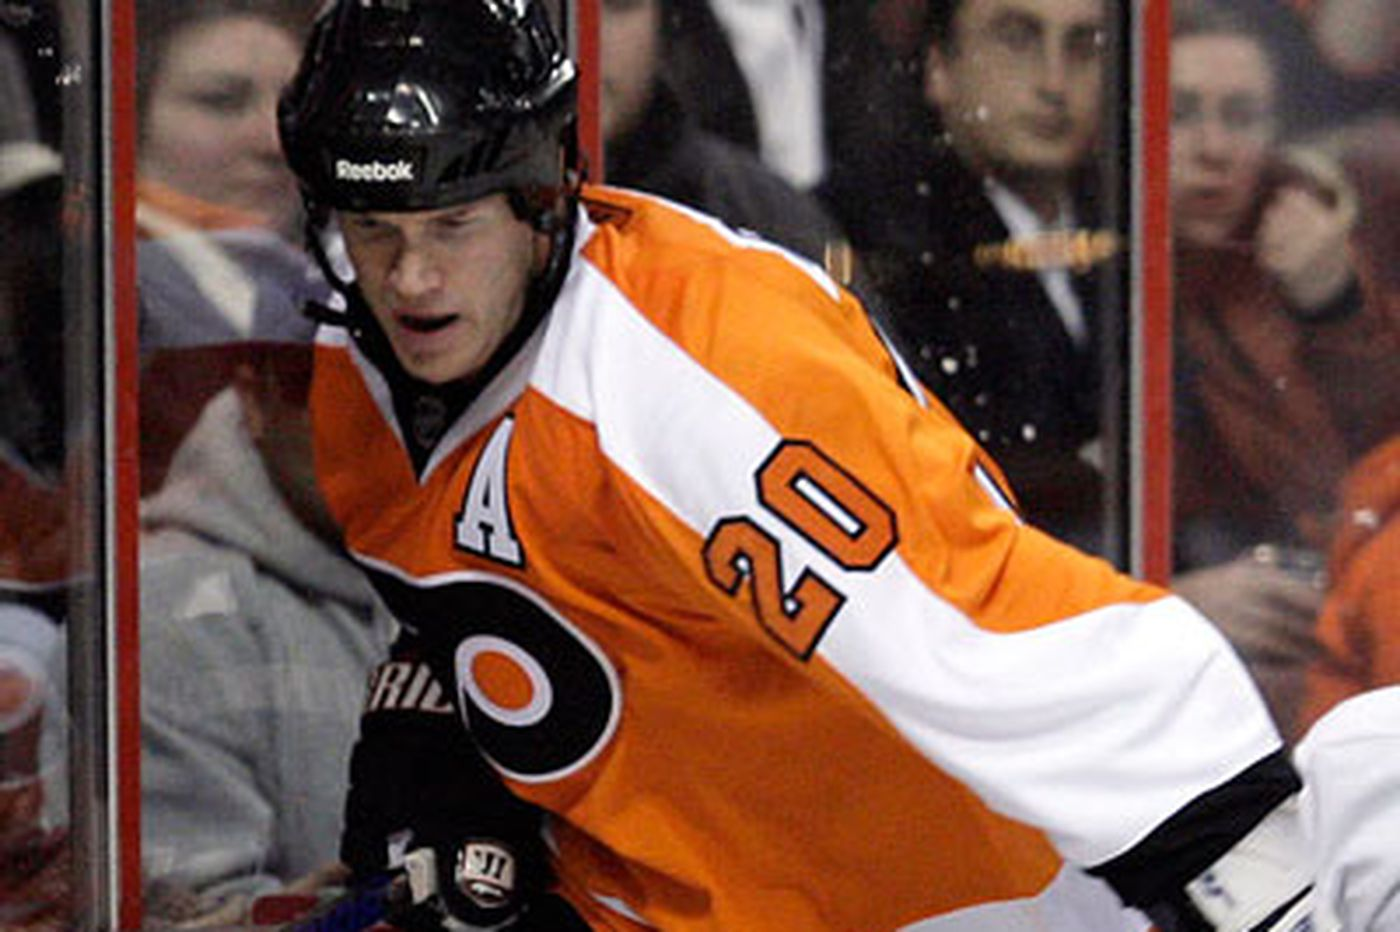 Flyers' Pronger to miss 4-6 weeks after surgery